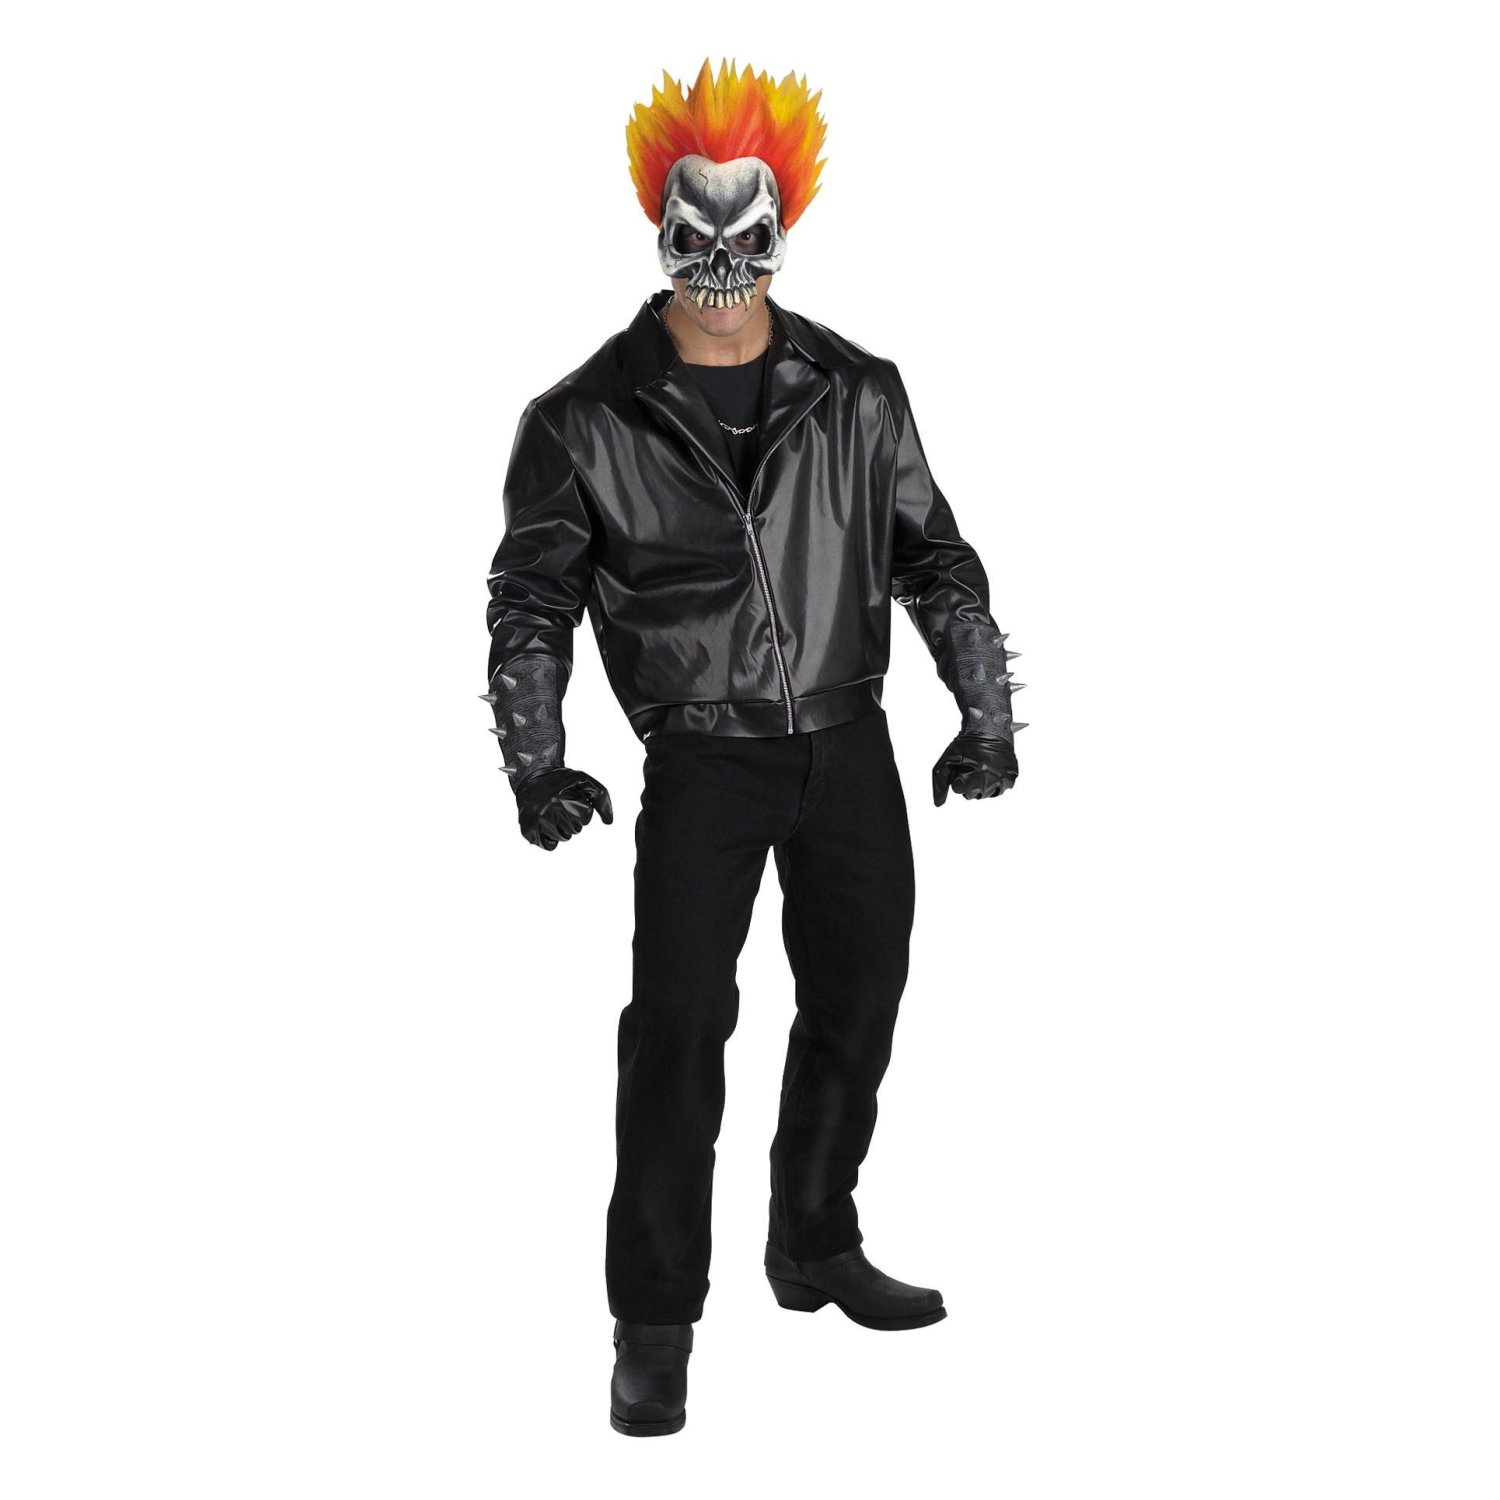 ghost rider halloween costumes - best costumes for halloween